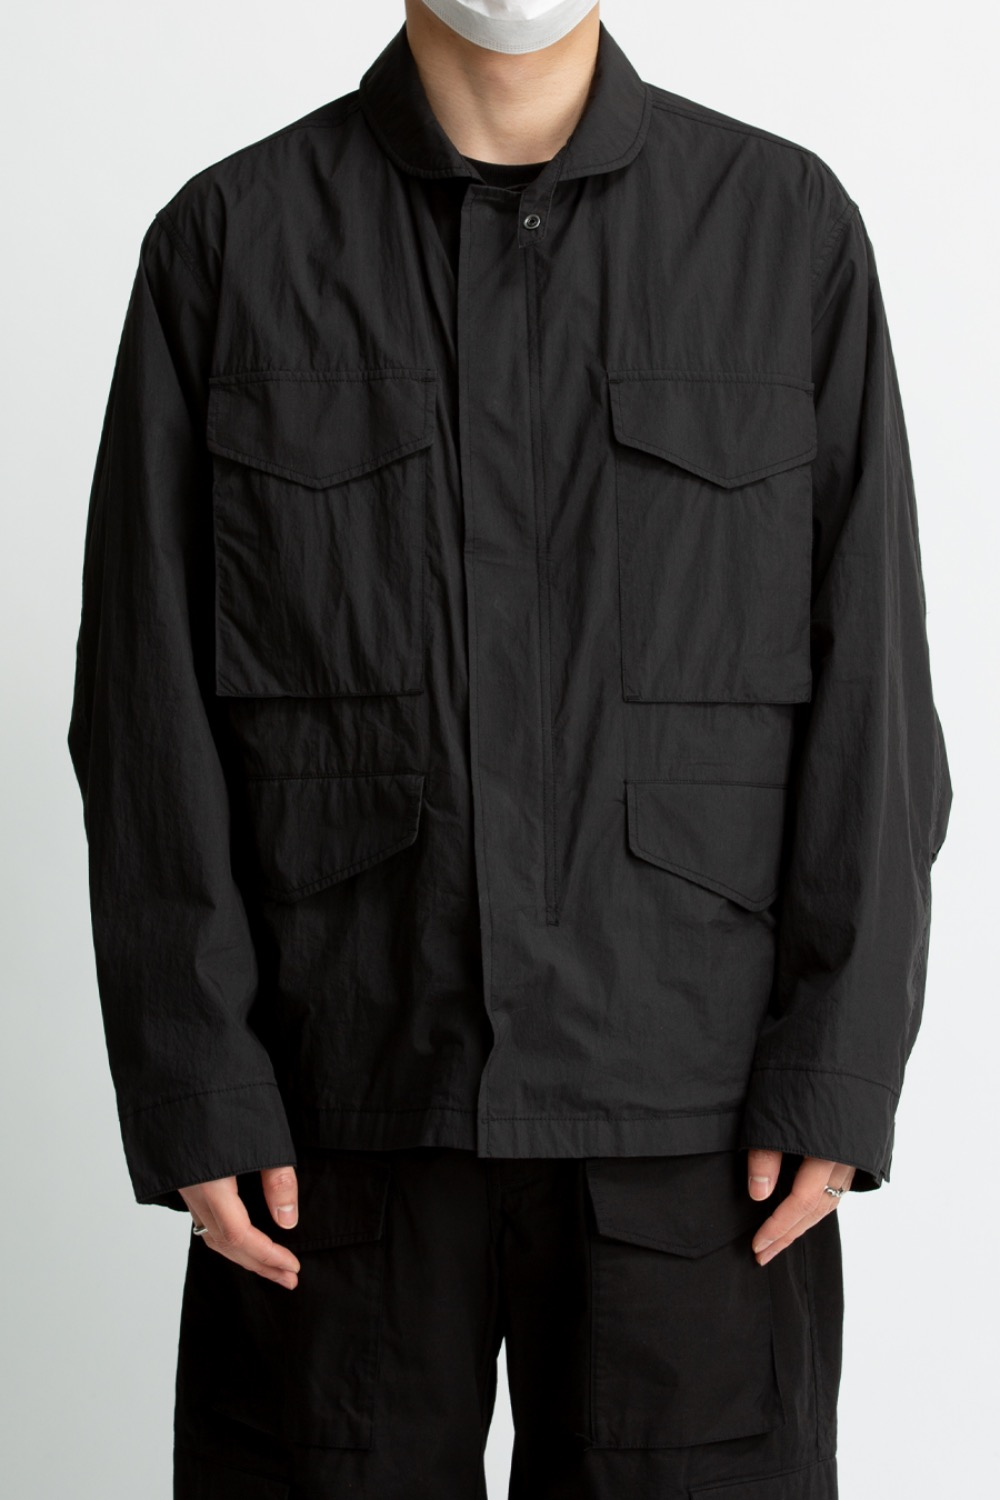 M21 JACKET BLACK WASHER BLACK